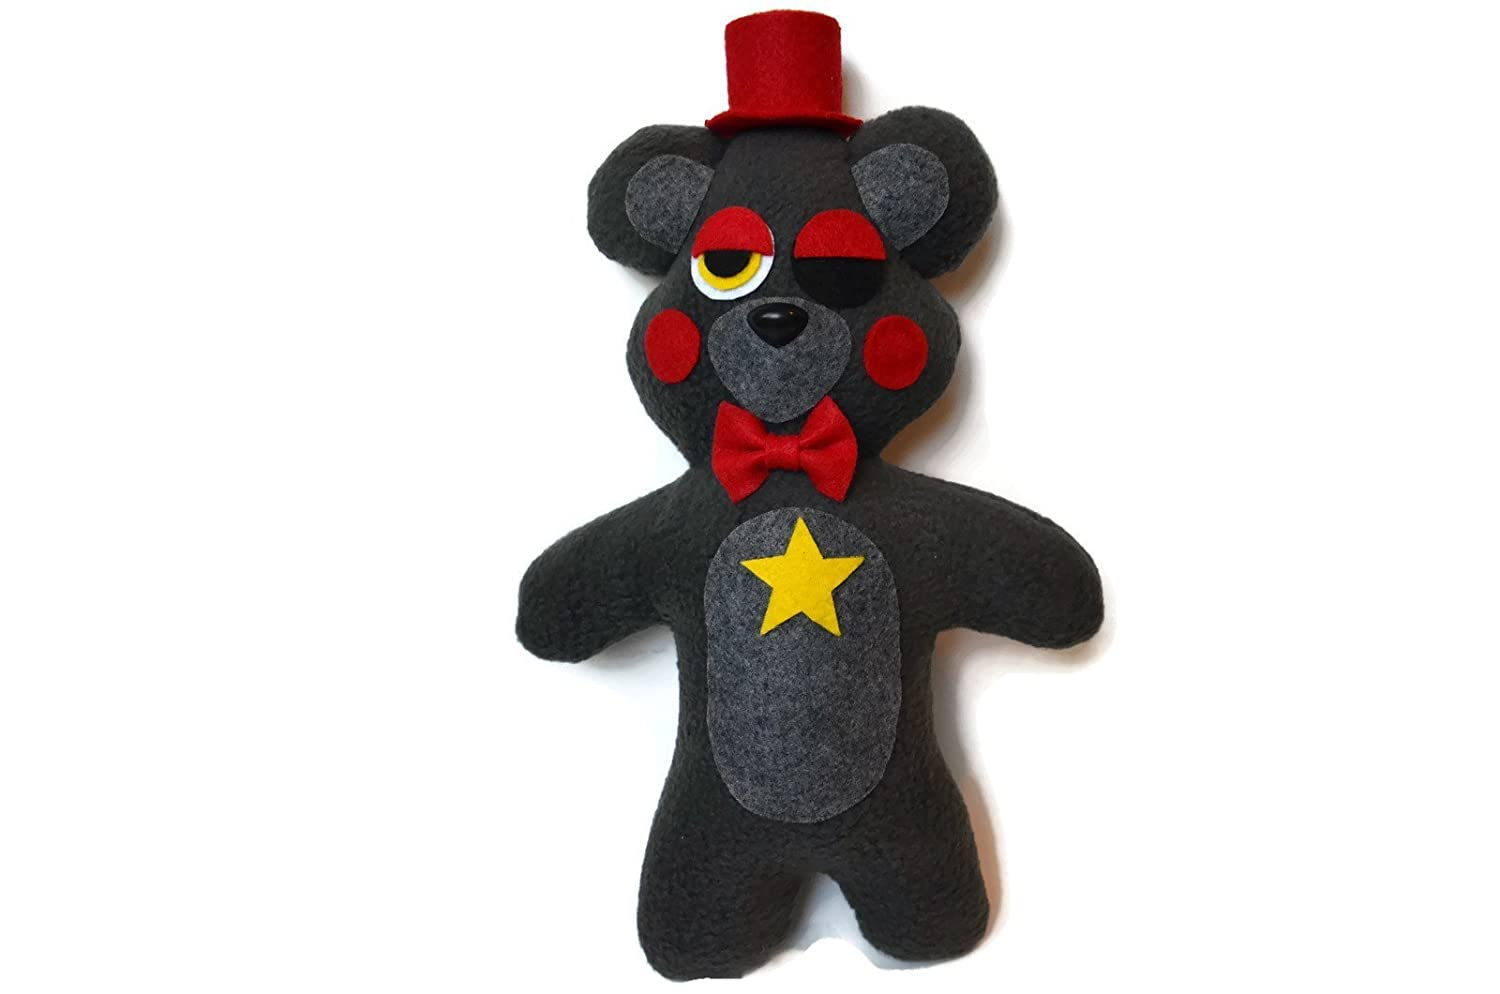 Lefty (Handmade Plush) Fnaf 13